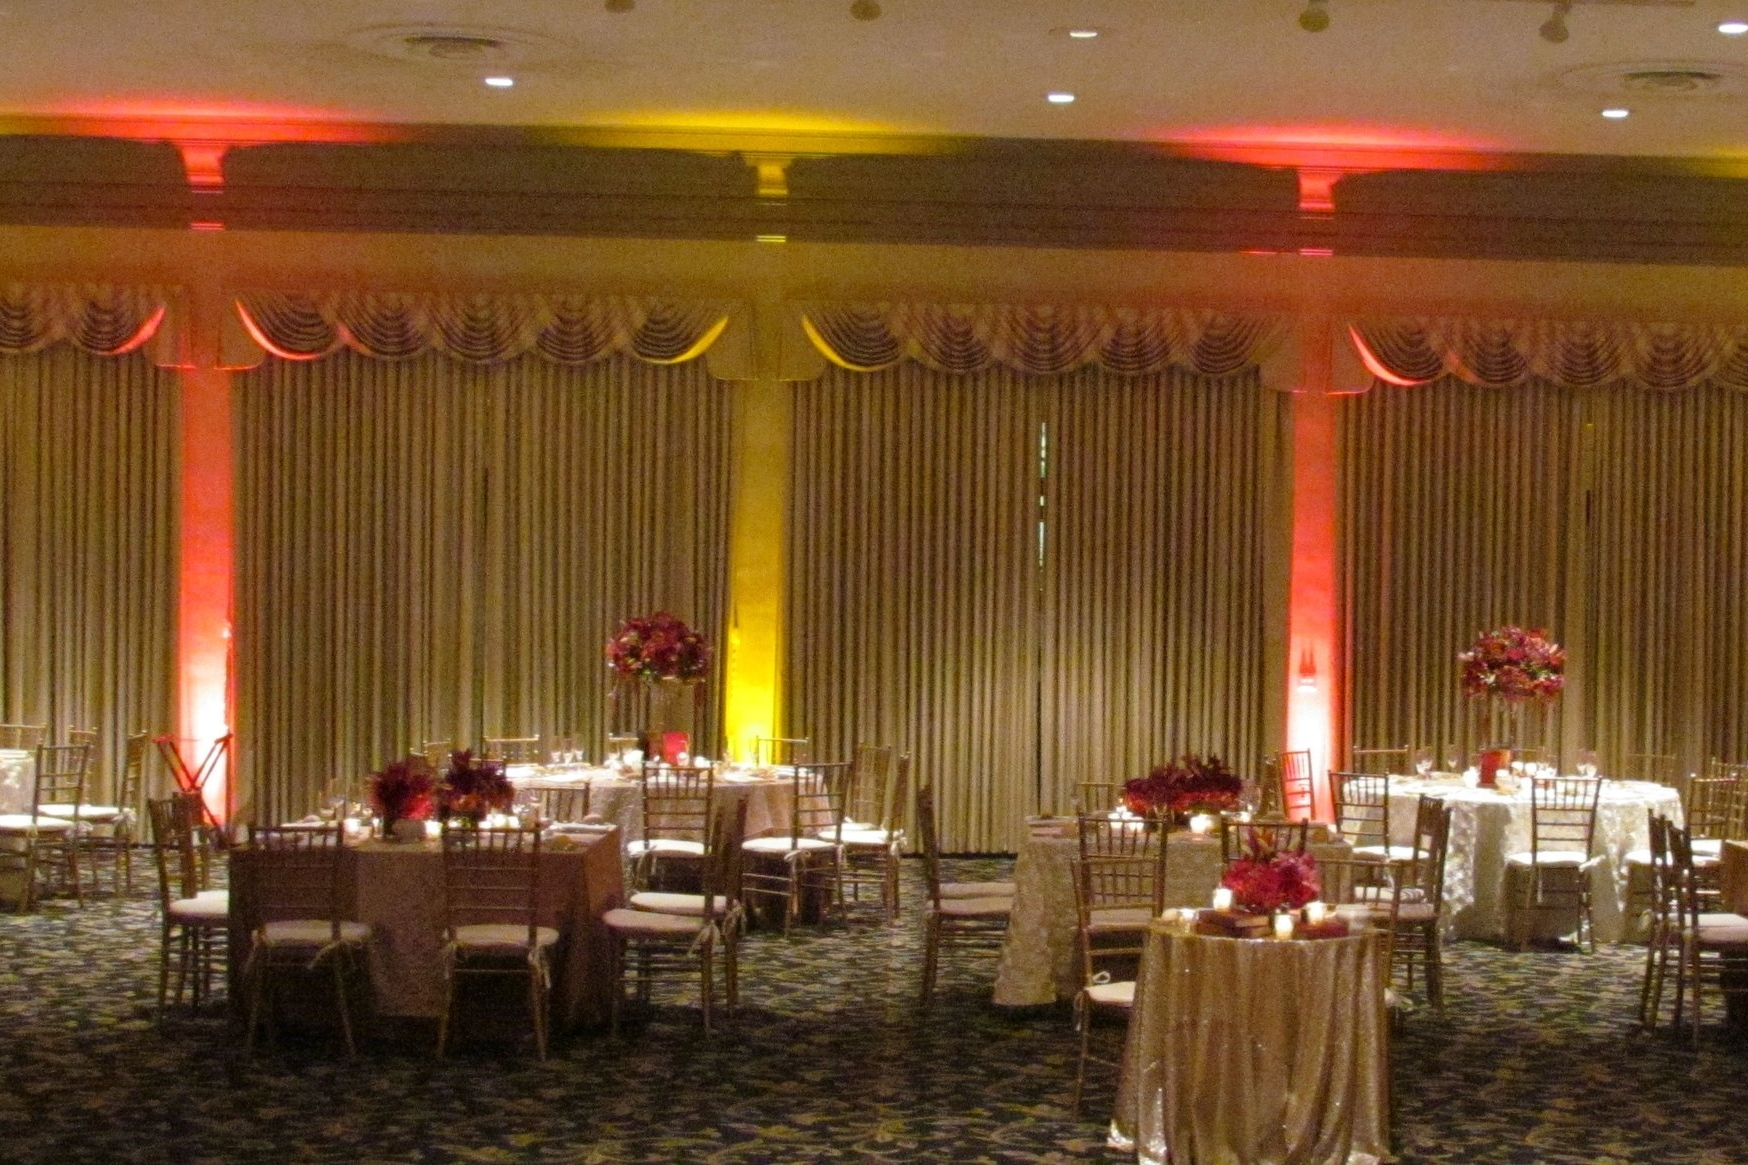 Freehof Hall:  the main banquet and reception space at Rodef Shalom. The room can accommodate an estimated 400 guests for a seated reception or 300 guests with a reception and dance floor. To further enhance your enjoyment of Freehof Hall, you may utilize Wechsler Gallery which is included in the rental fee.